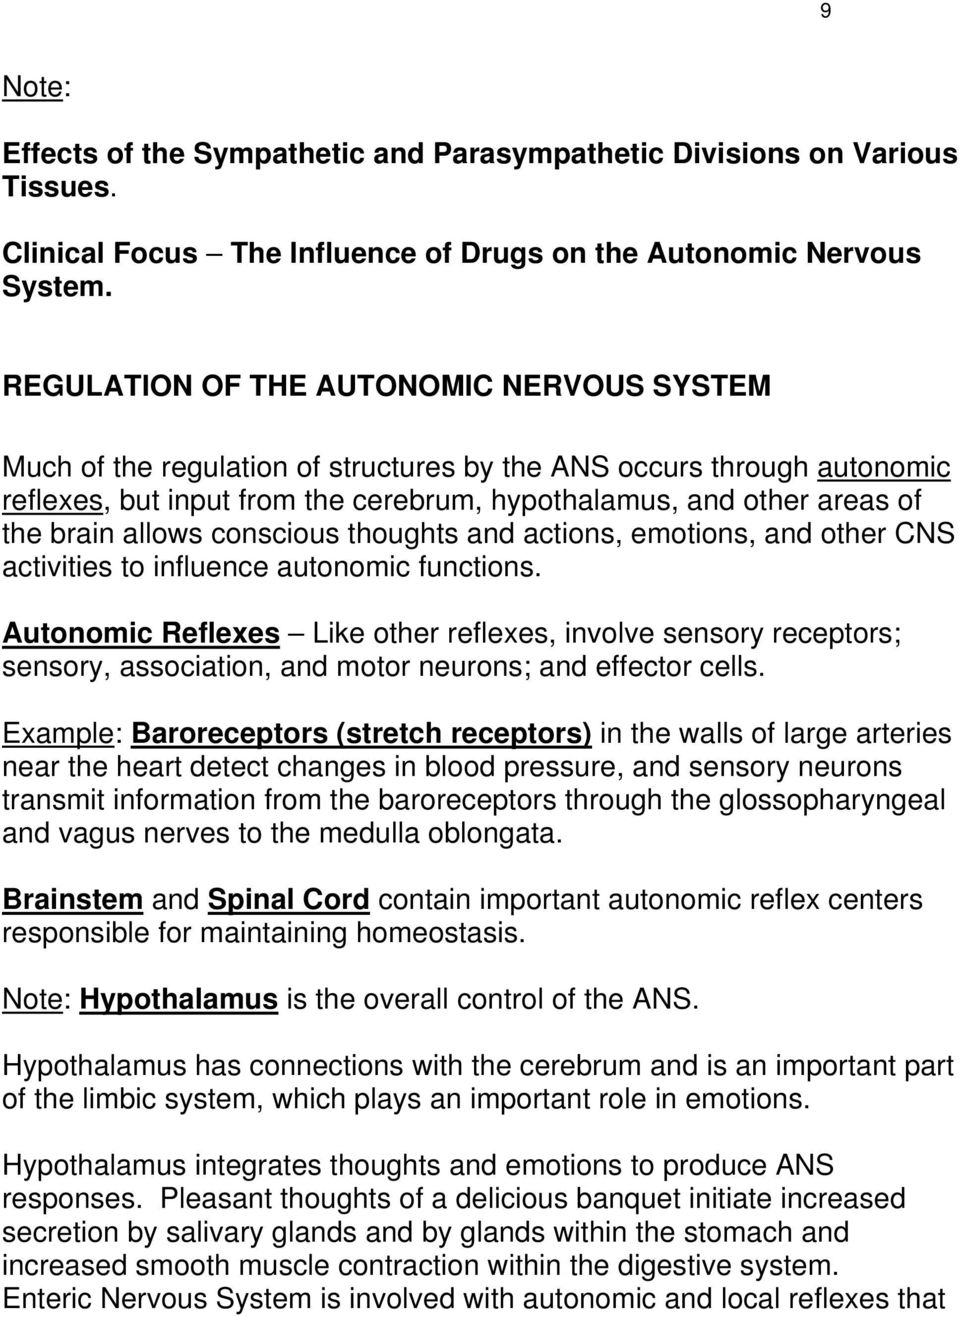 allows conscious thoughts and actions, emotions, and other CNS activities to influence autonomic functions.